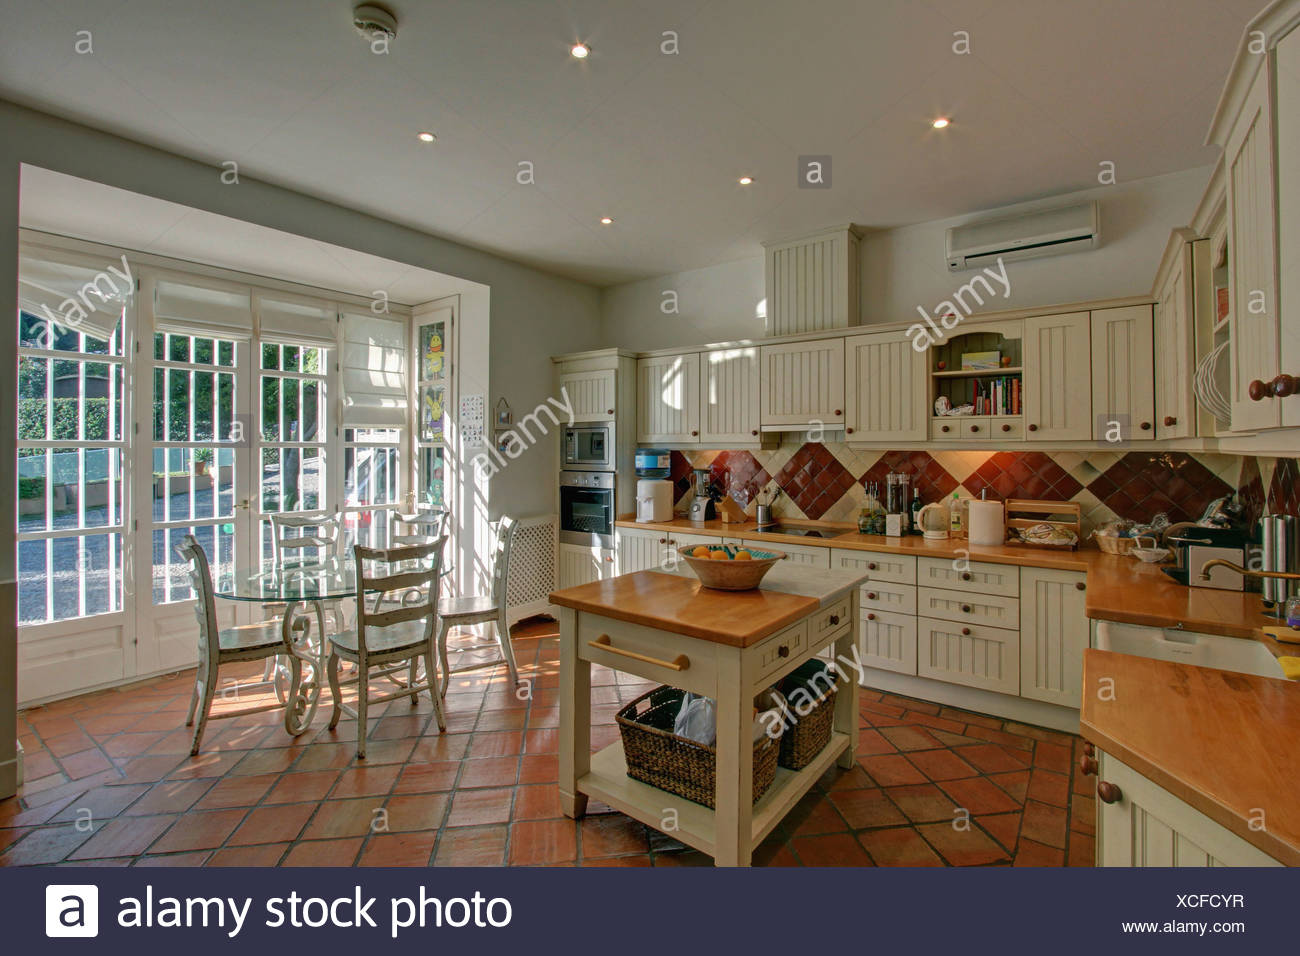 Butcher S Block In Country Style Spanish Kitchen With Terracotta Tiled Floor And Glass Dining Table With White Chairs Stock Photo Alamy